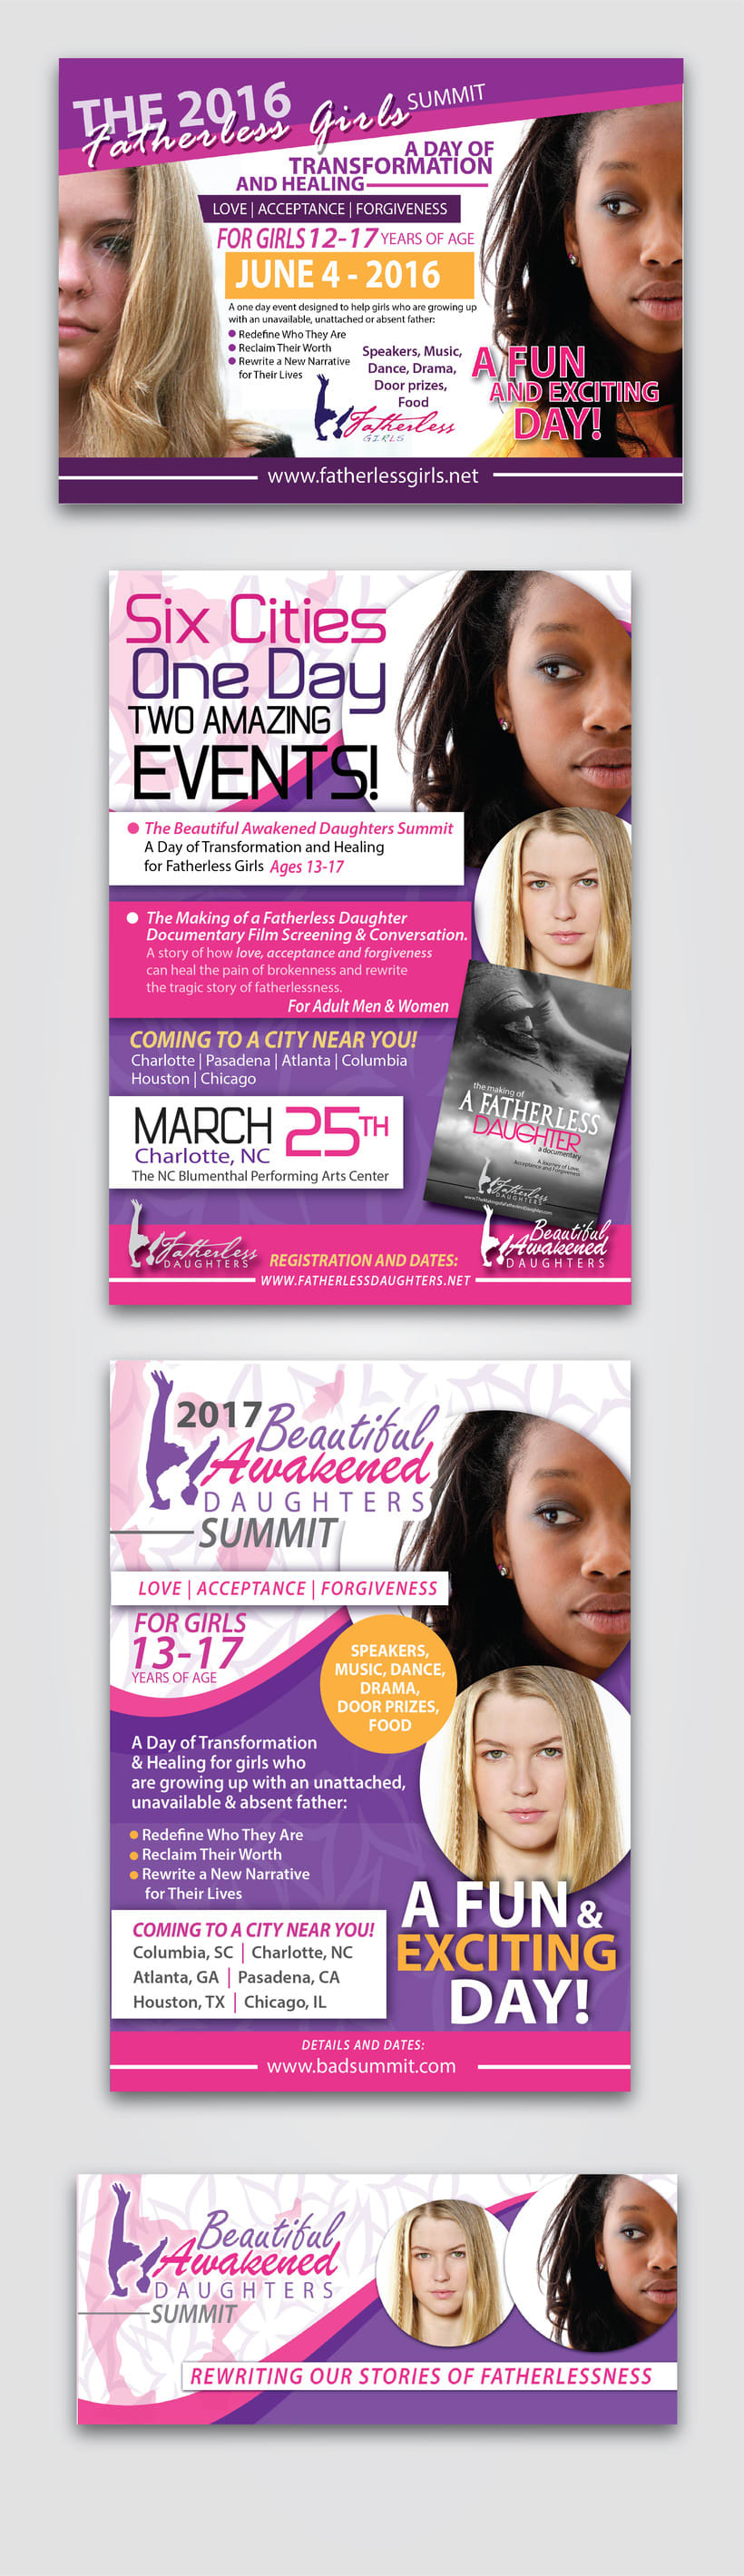 [FLYERS & BANNERS] Angela Carr Patterson  -1